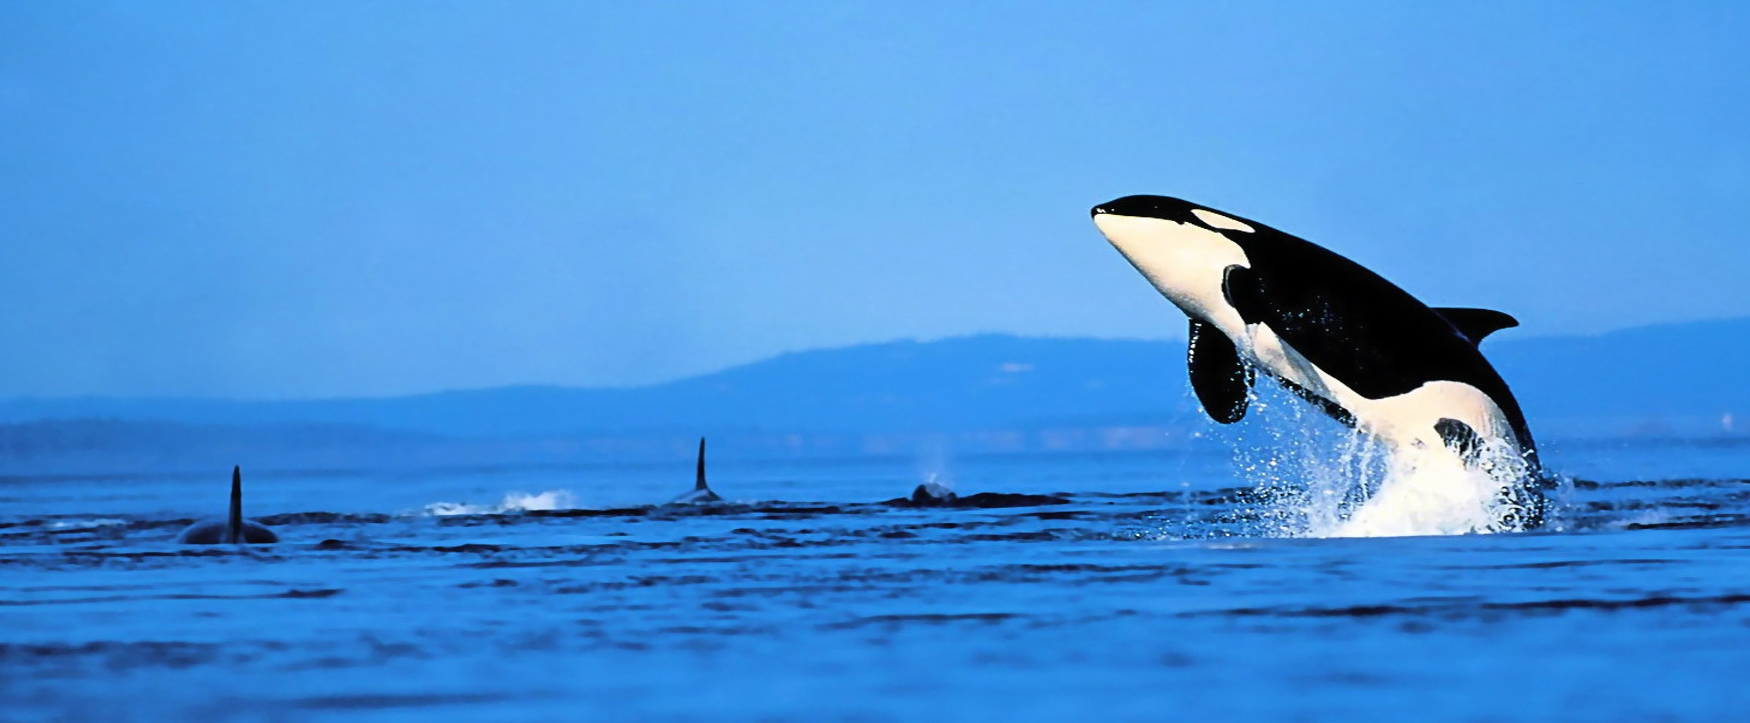 killer-whales-jumping